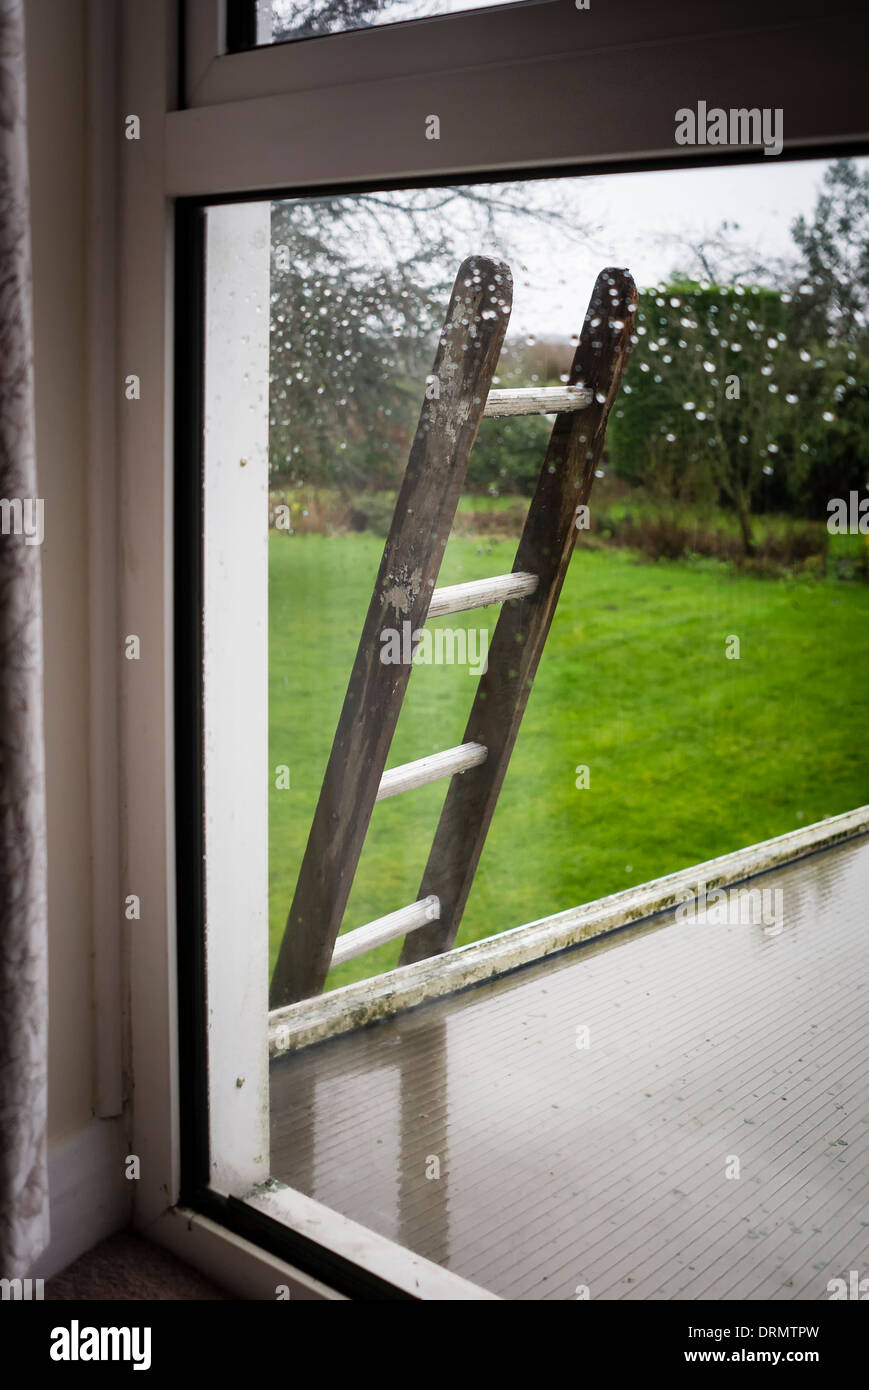 A maintenance ladder left giving access to roof and presenting a security risk of uninvited intrusion - Stock Image